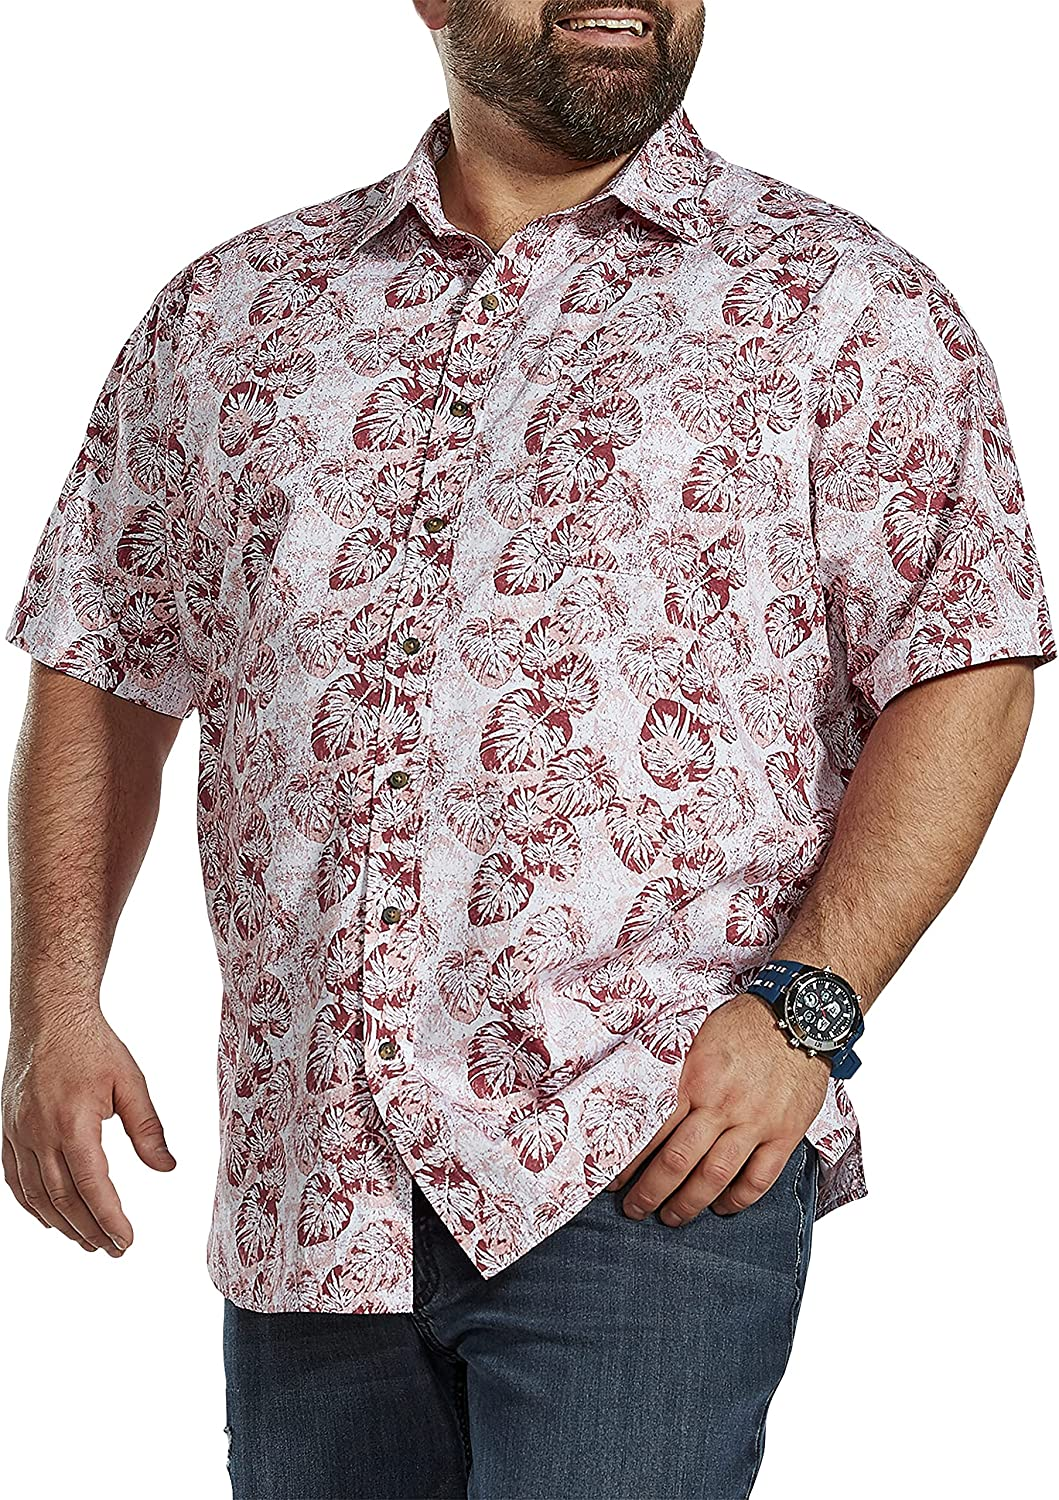 Oak Hill by DXL Big and Tall Washed Floral Print Sport Shirt, Pink Red